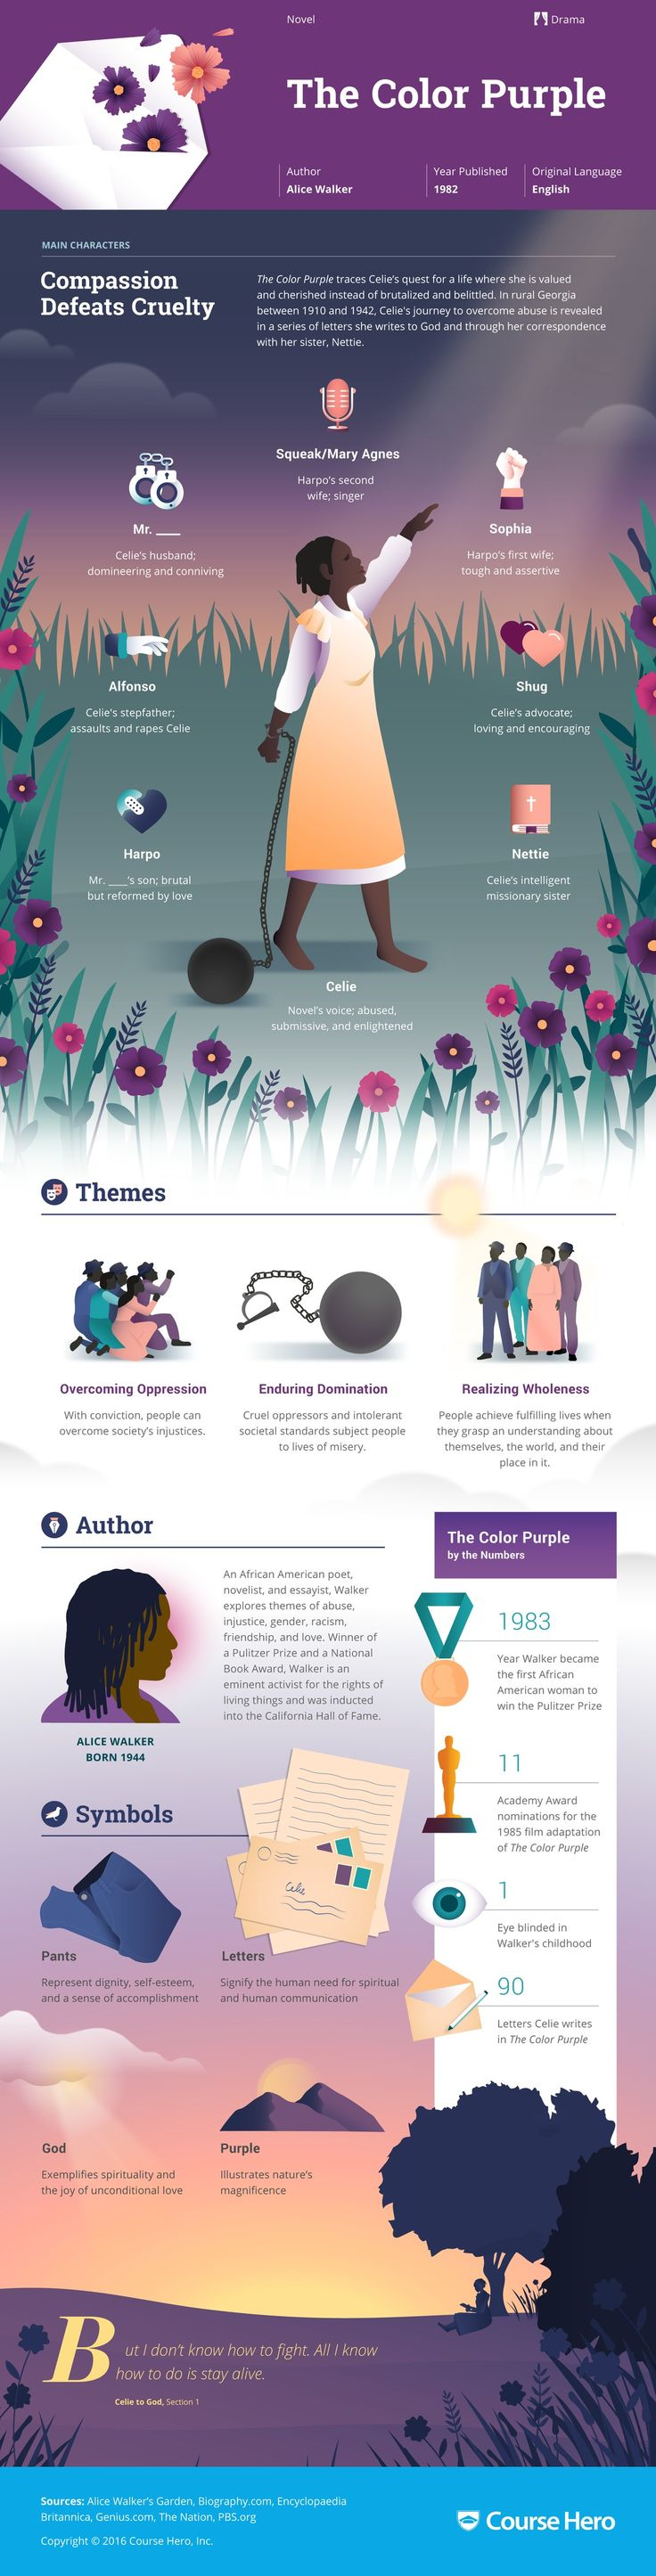 17 best images about alice walker feminist quotes alice walker s the color purple infographic to help you understand everything about the book visually learn all about the characters themes